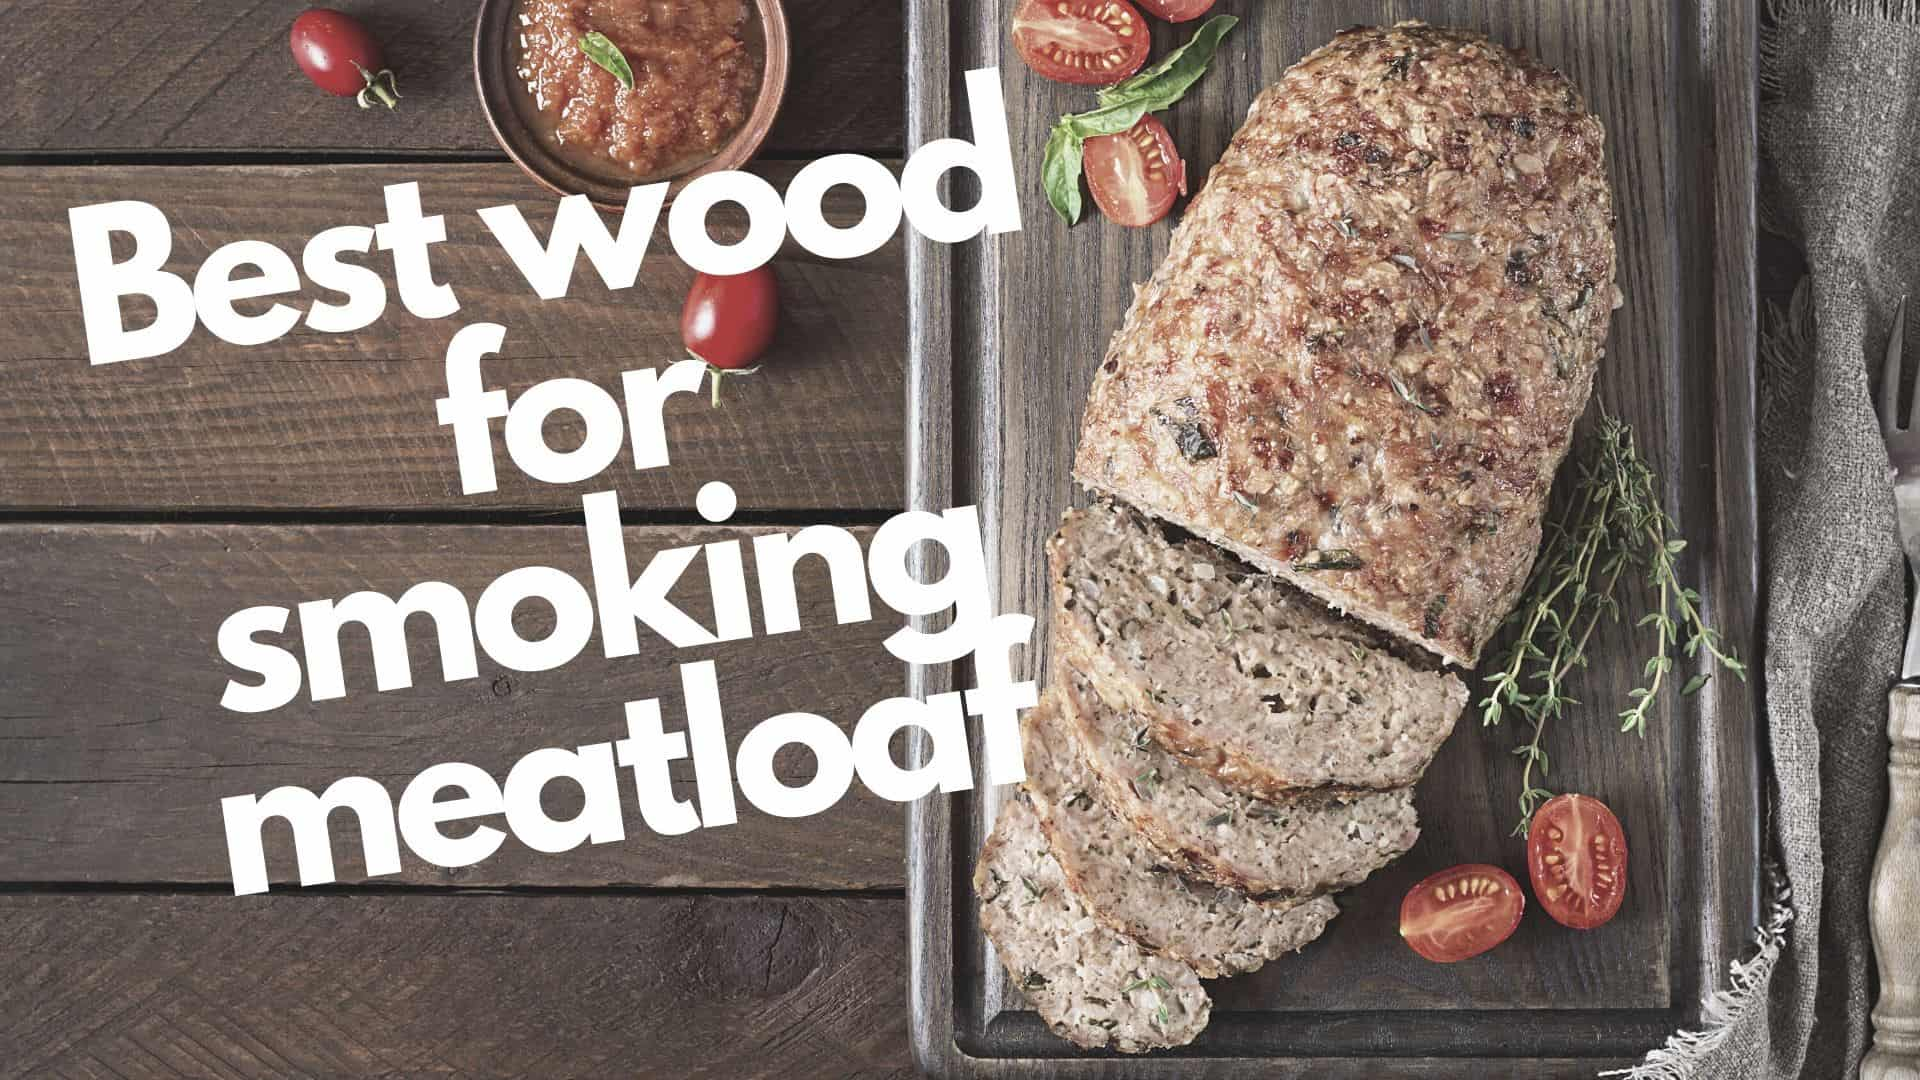 Best wood for smoking meatloaf | 5 wood choices & some to avoid